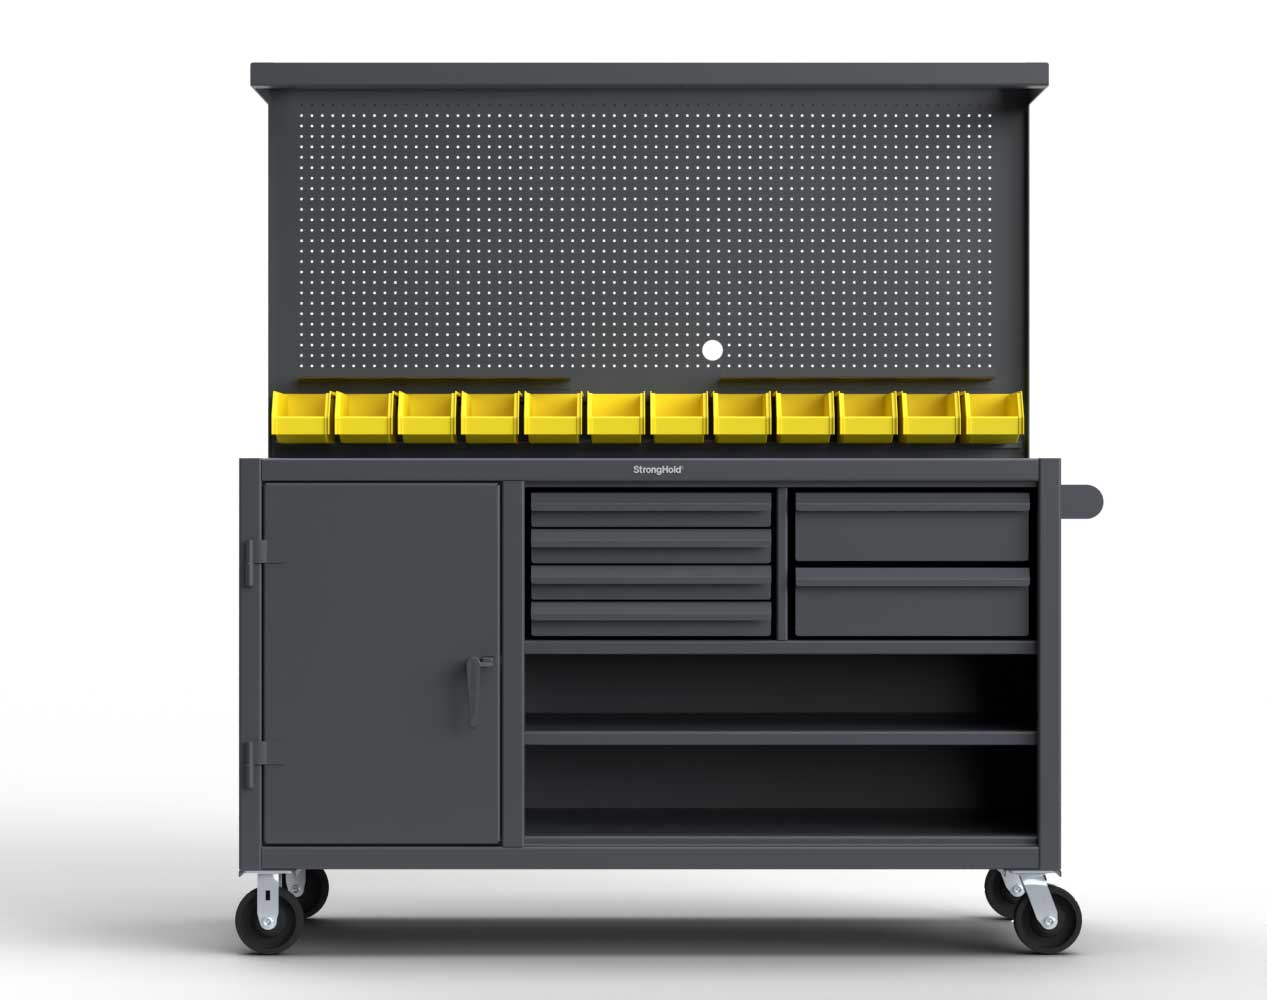 Extreme Duty 12 GA Mobile Workbench with Pegboard, 12 Bins, 6 Drawers, 3 Shelves – 72 In. W x 30 In. D x 80 In. H